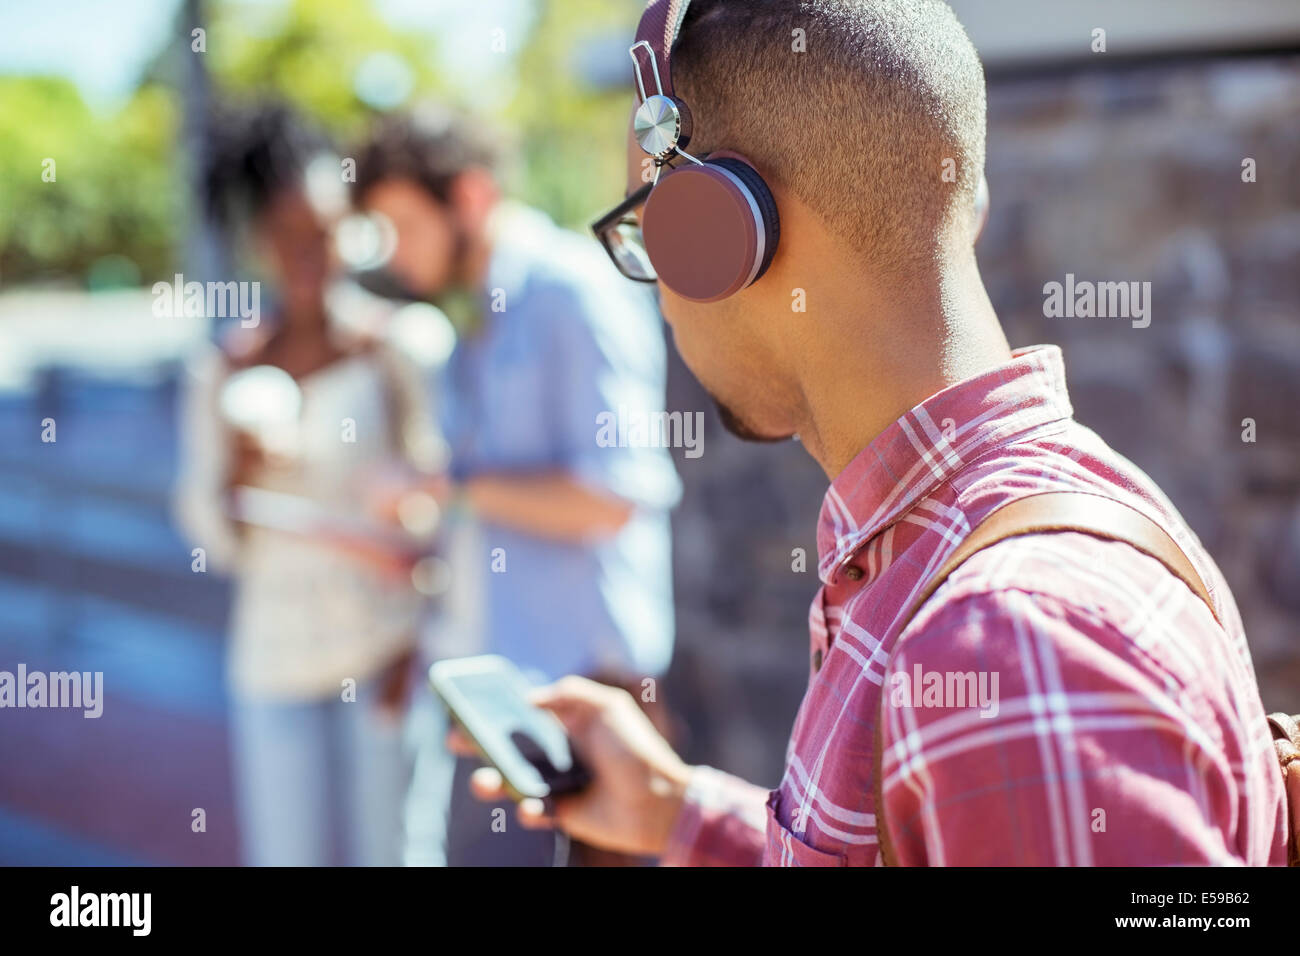 Man listening to mp3 player outdoors - Stock Image